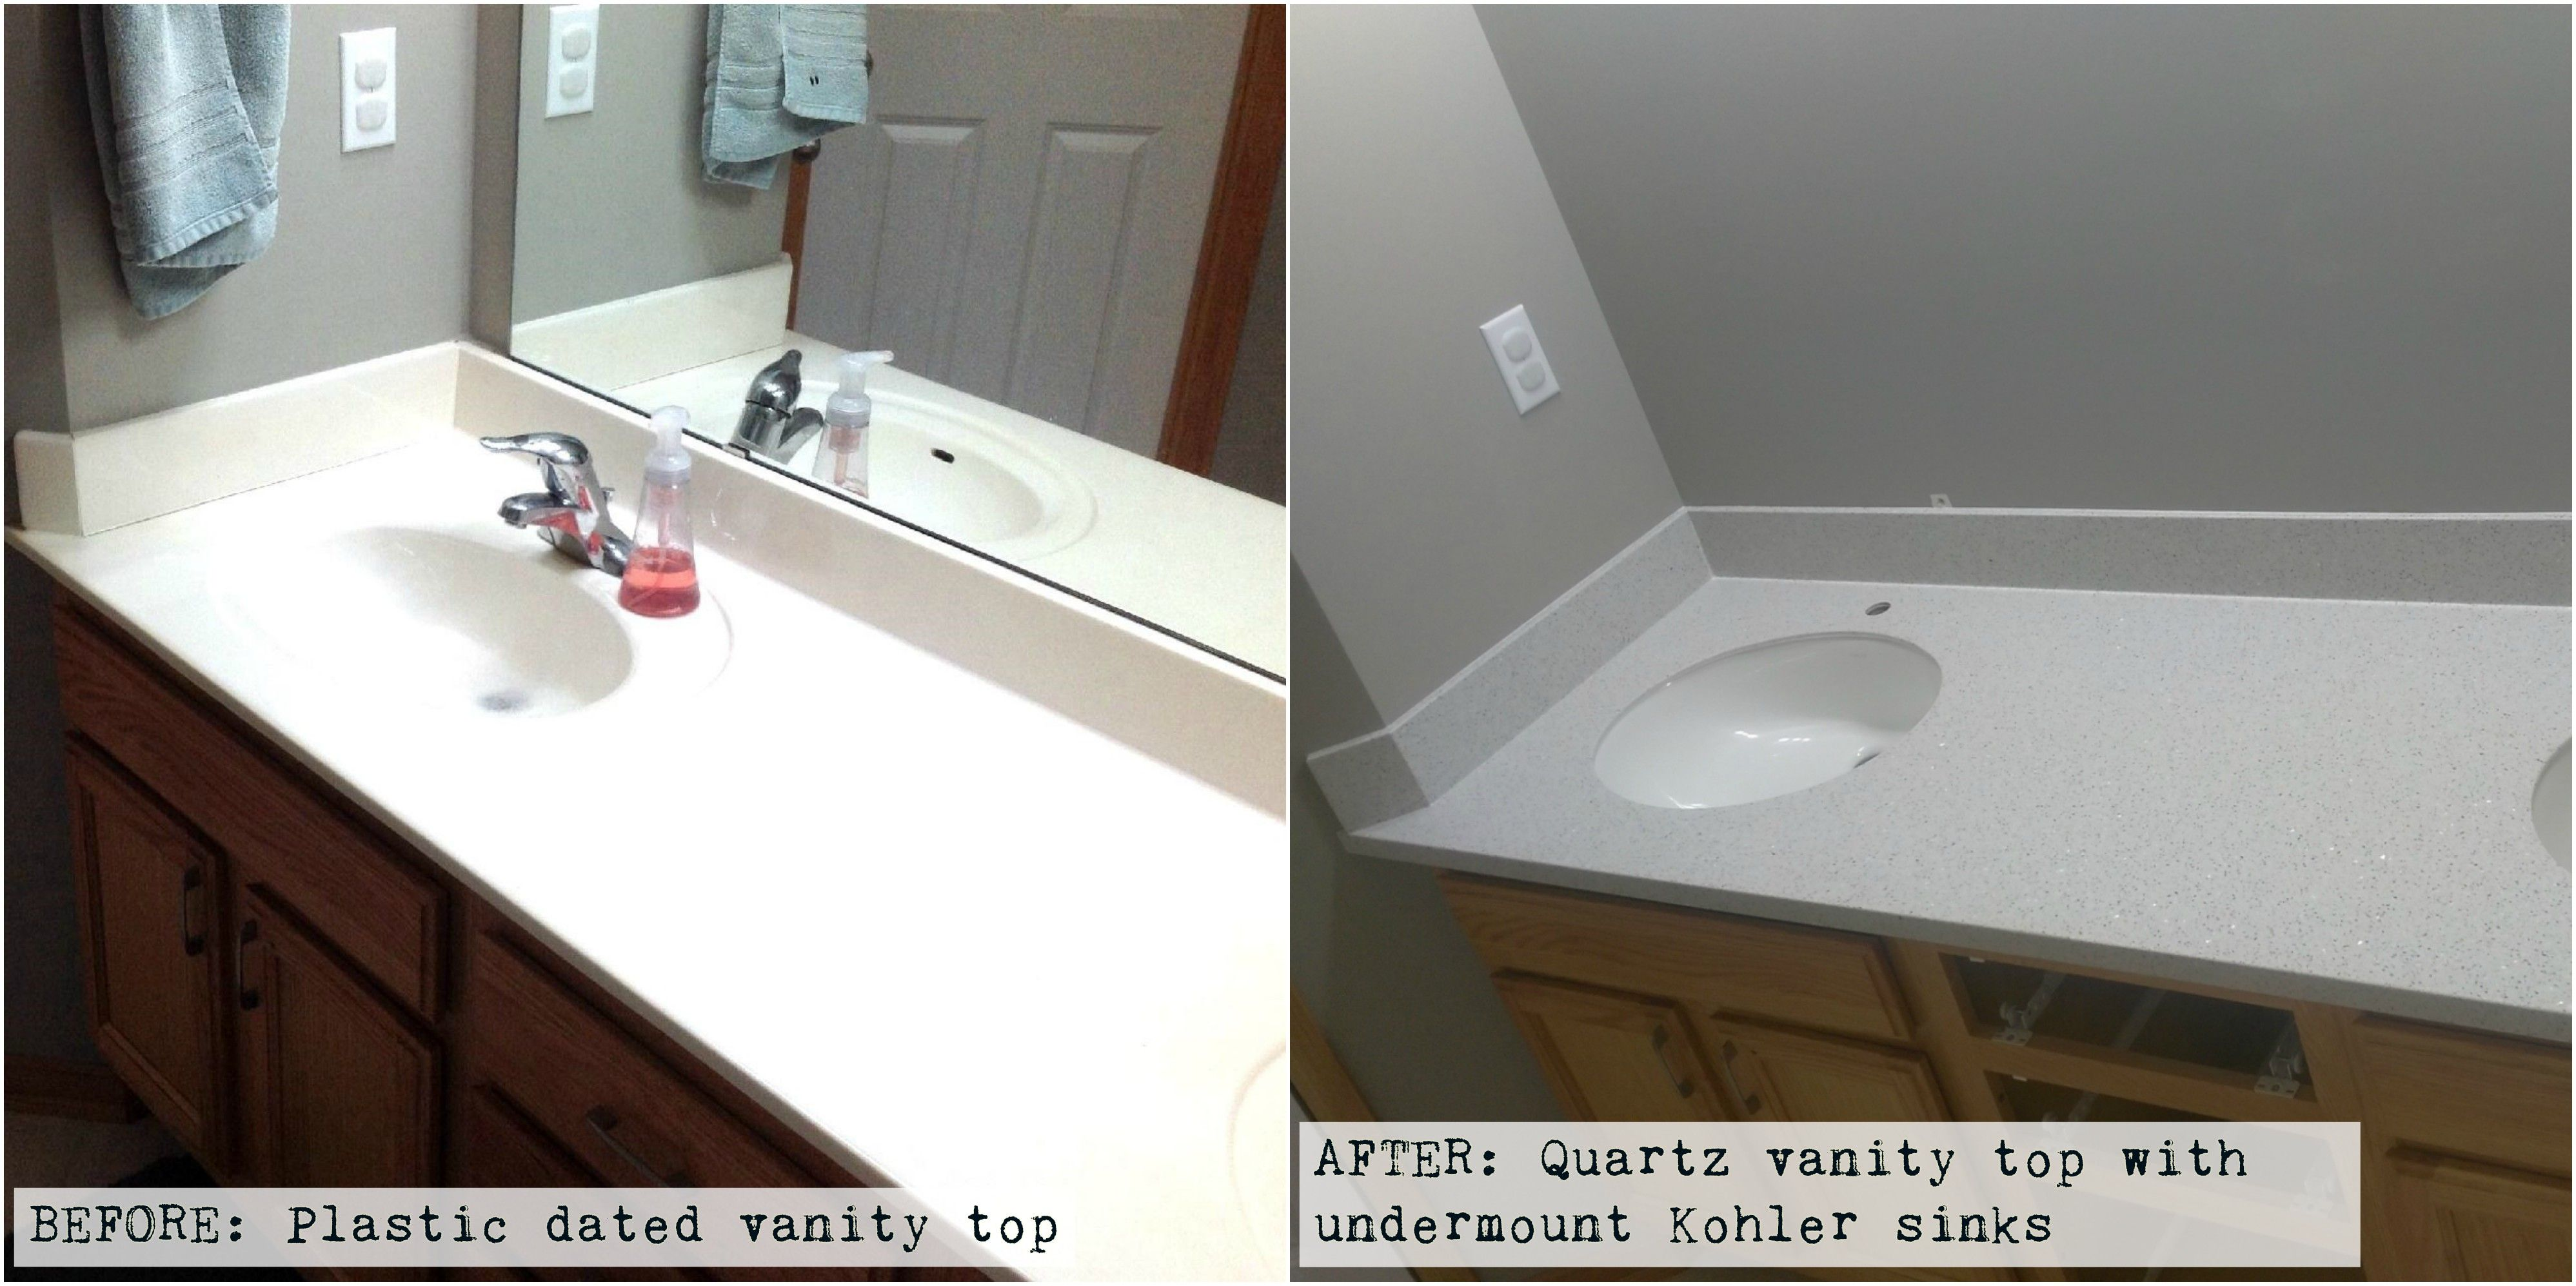 Take Out That Old Stained Cracked Plastic Vanity And Replace With A Maintenance Free Quartz Vanit Engineered Stone Countertops Kohler Sink Quartz Vanity Tops